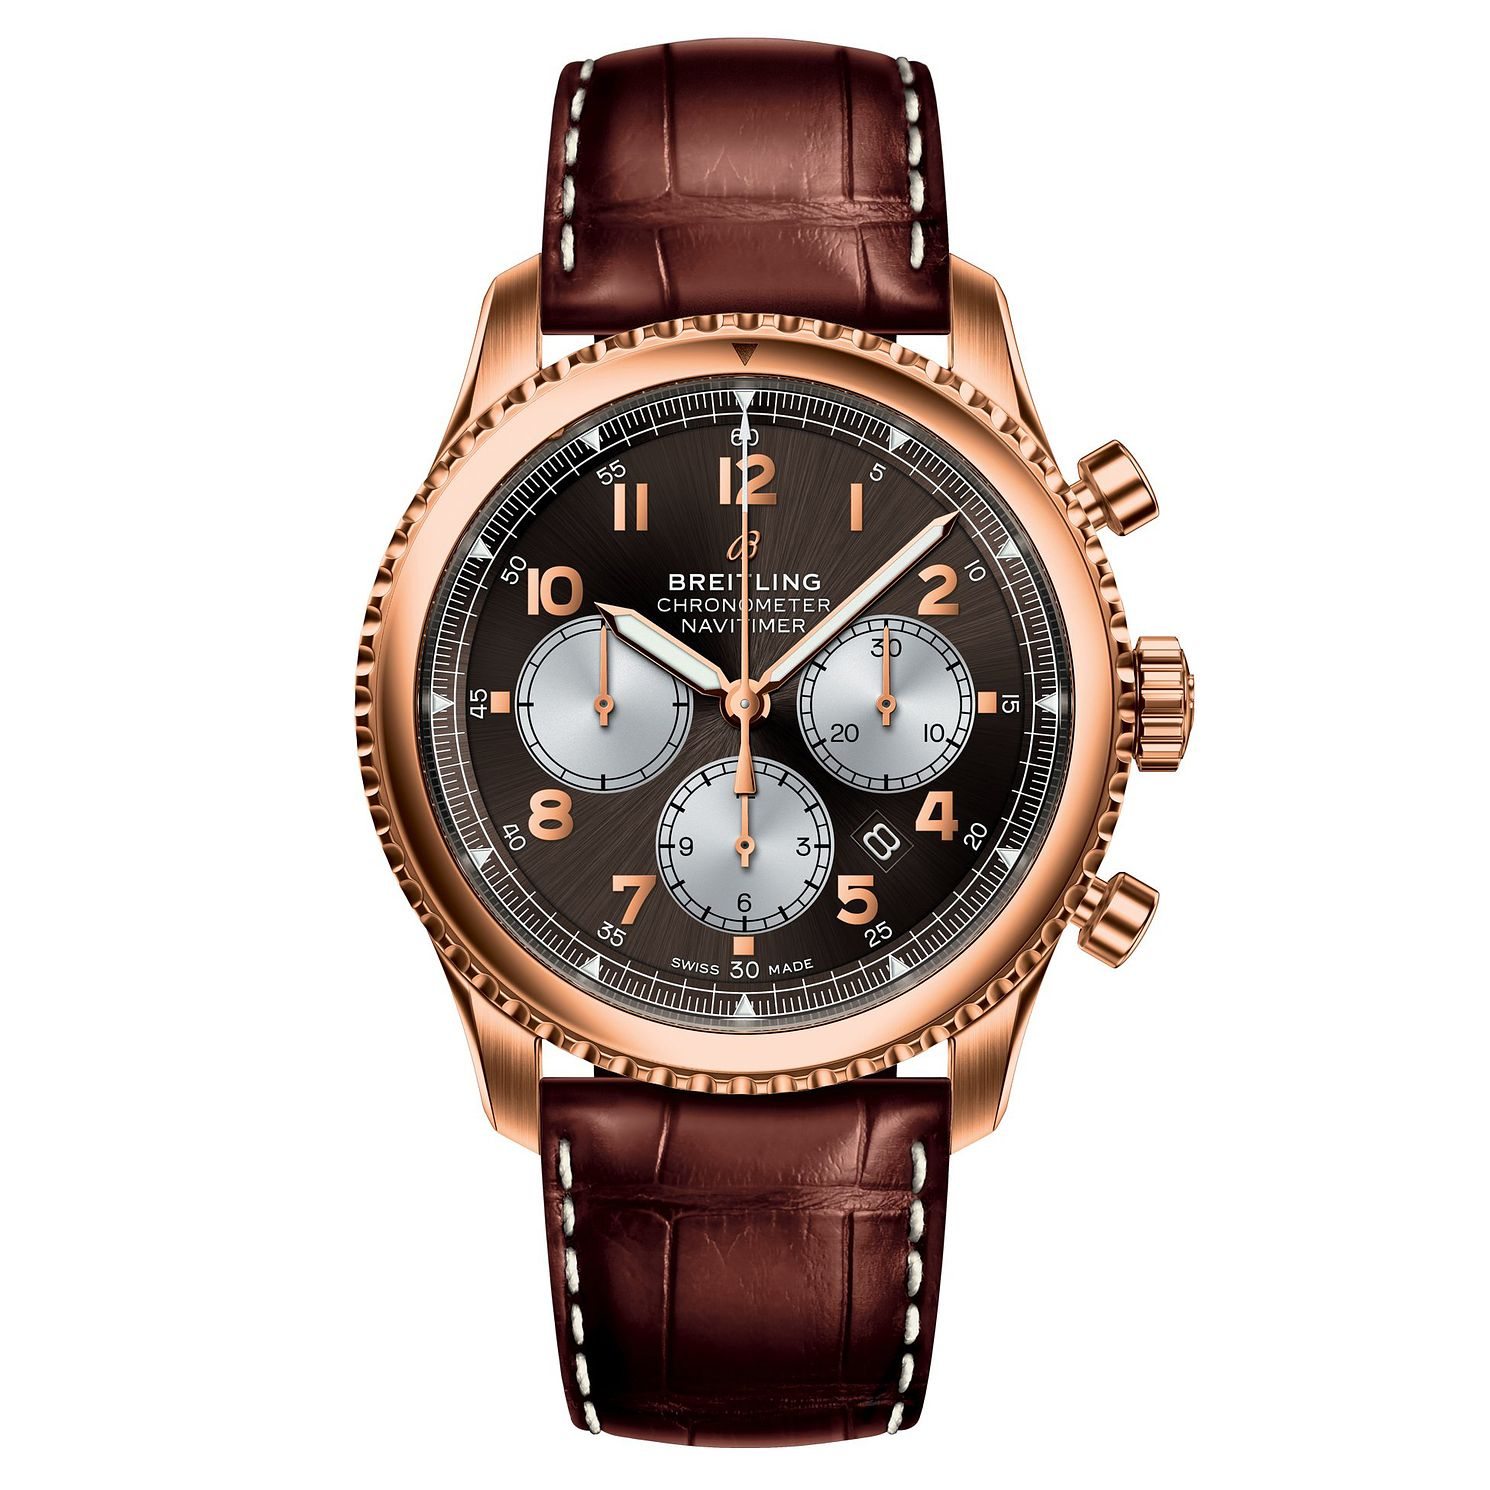 Breitling Aviator 8 B01 Men's Brown Leather Strap Watch - Product number 8561494